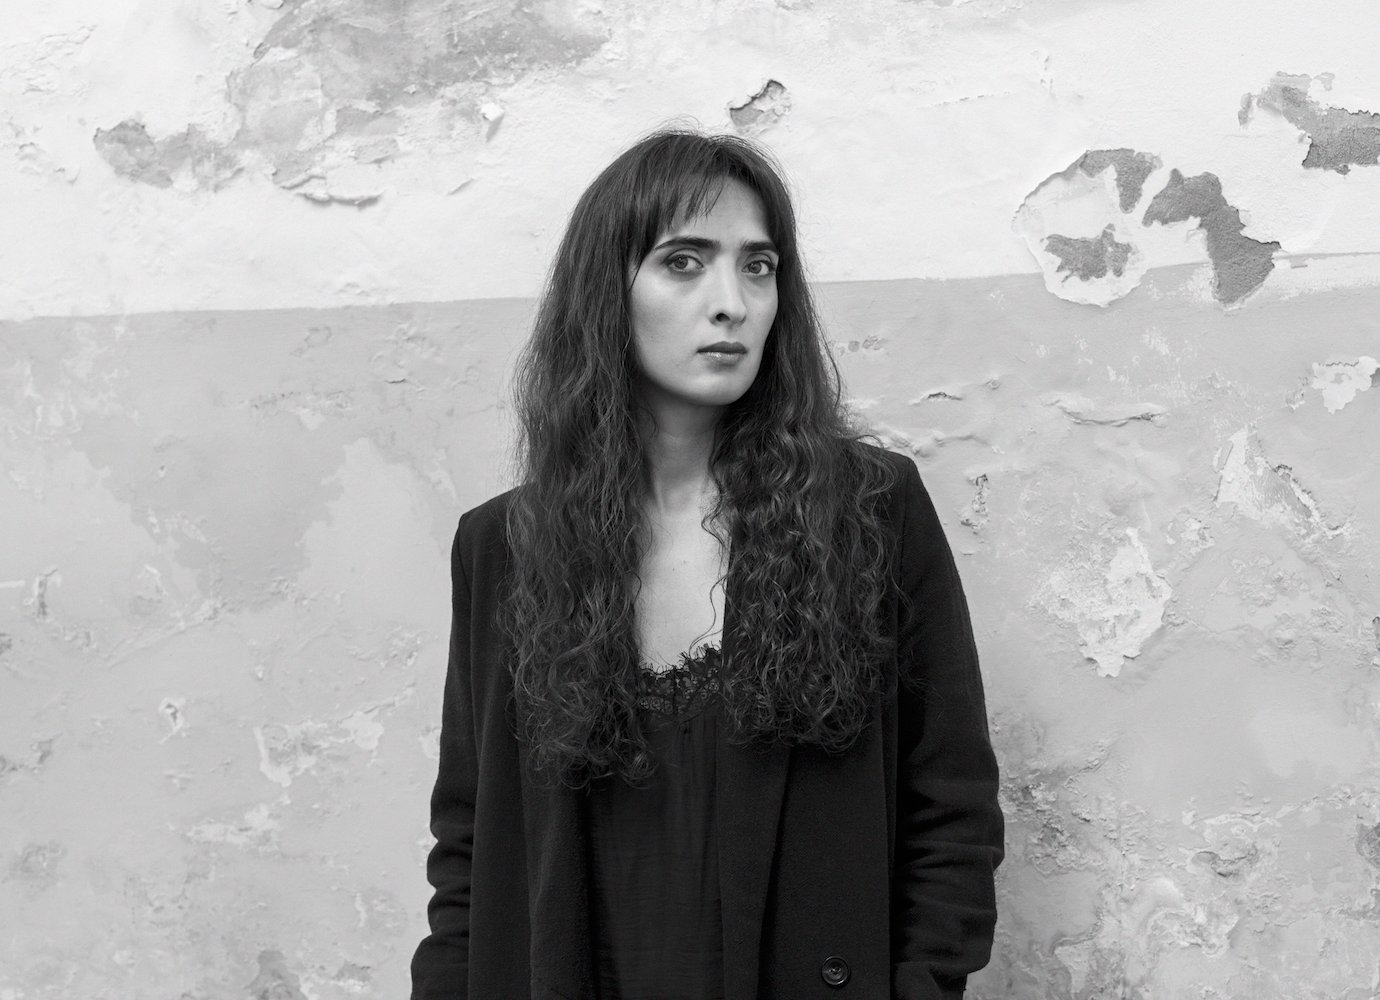 Young in the 90s: in her debut novel, director Nana Ekvtimishvili explores a decade most Georgians want to forget